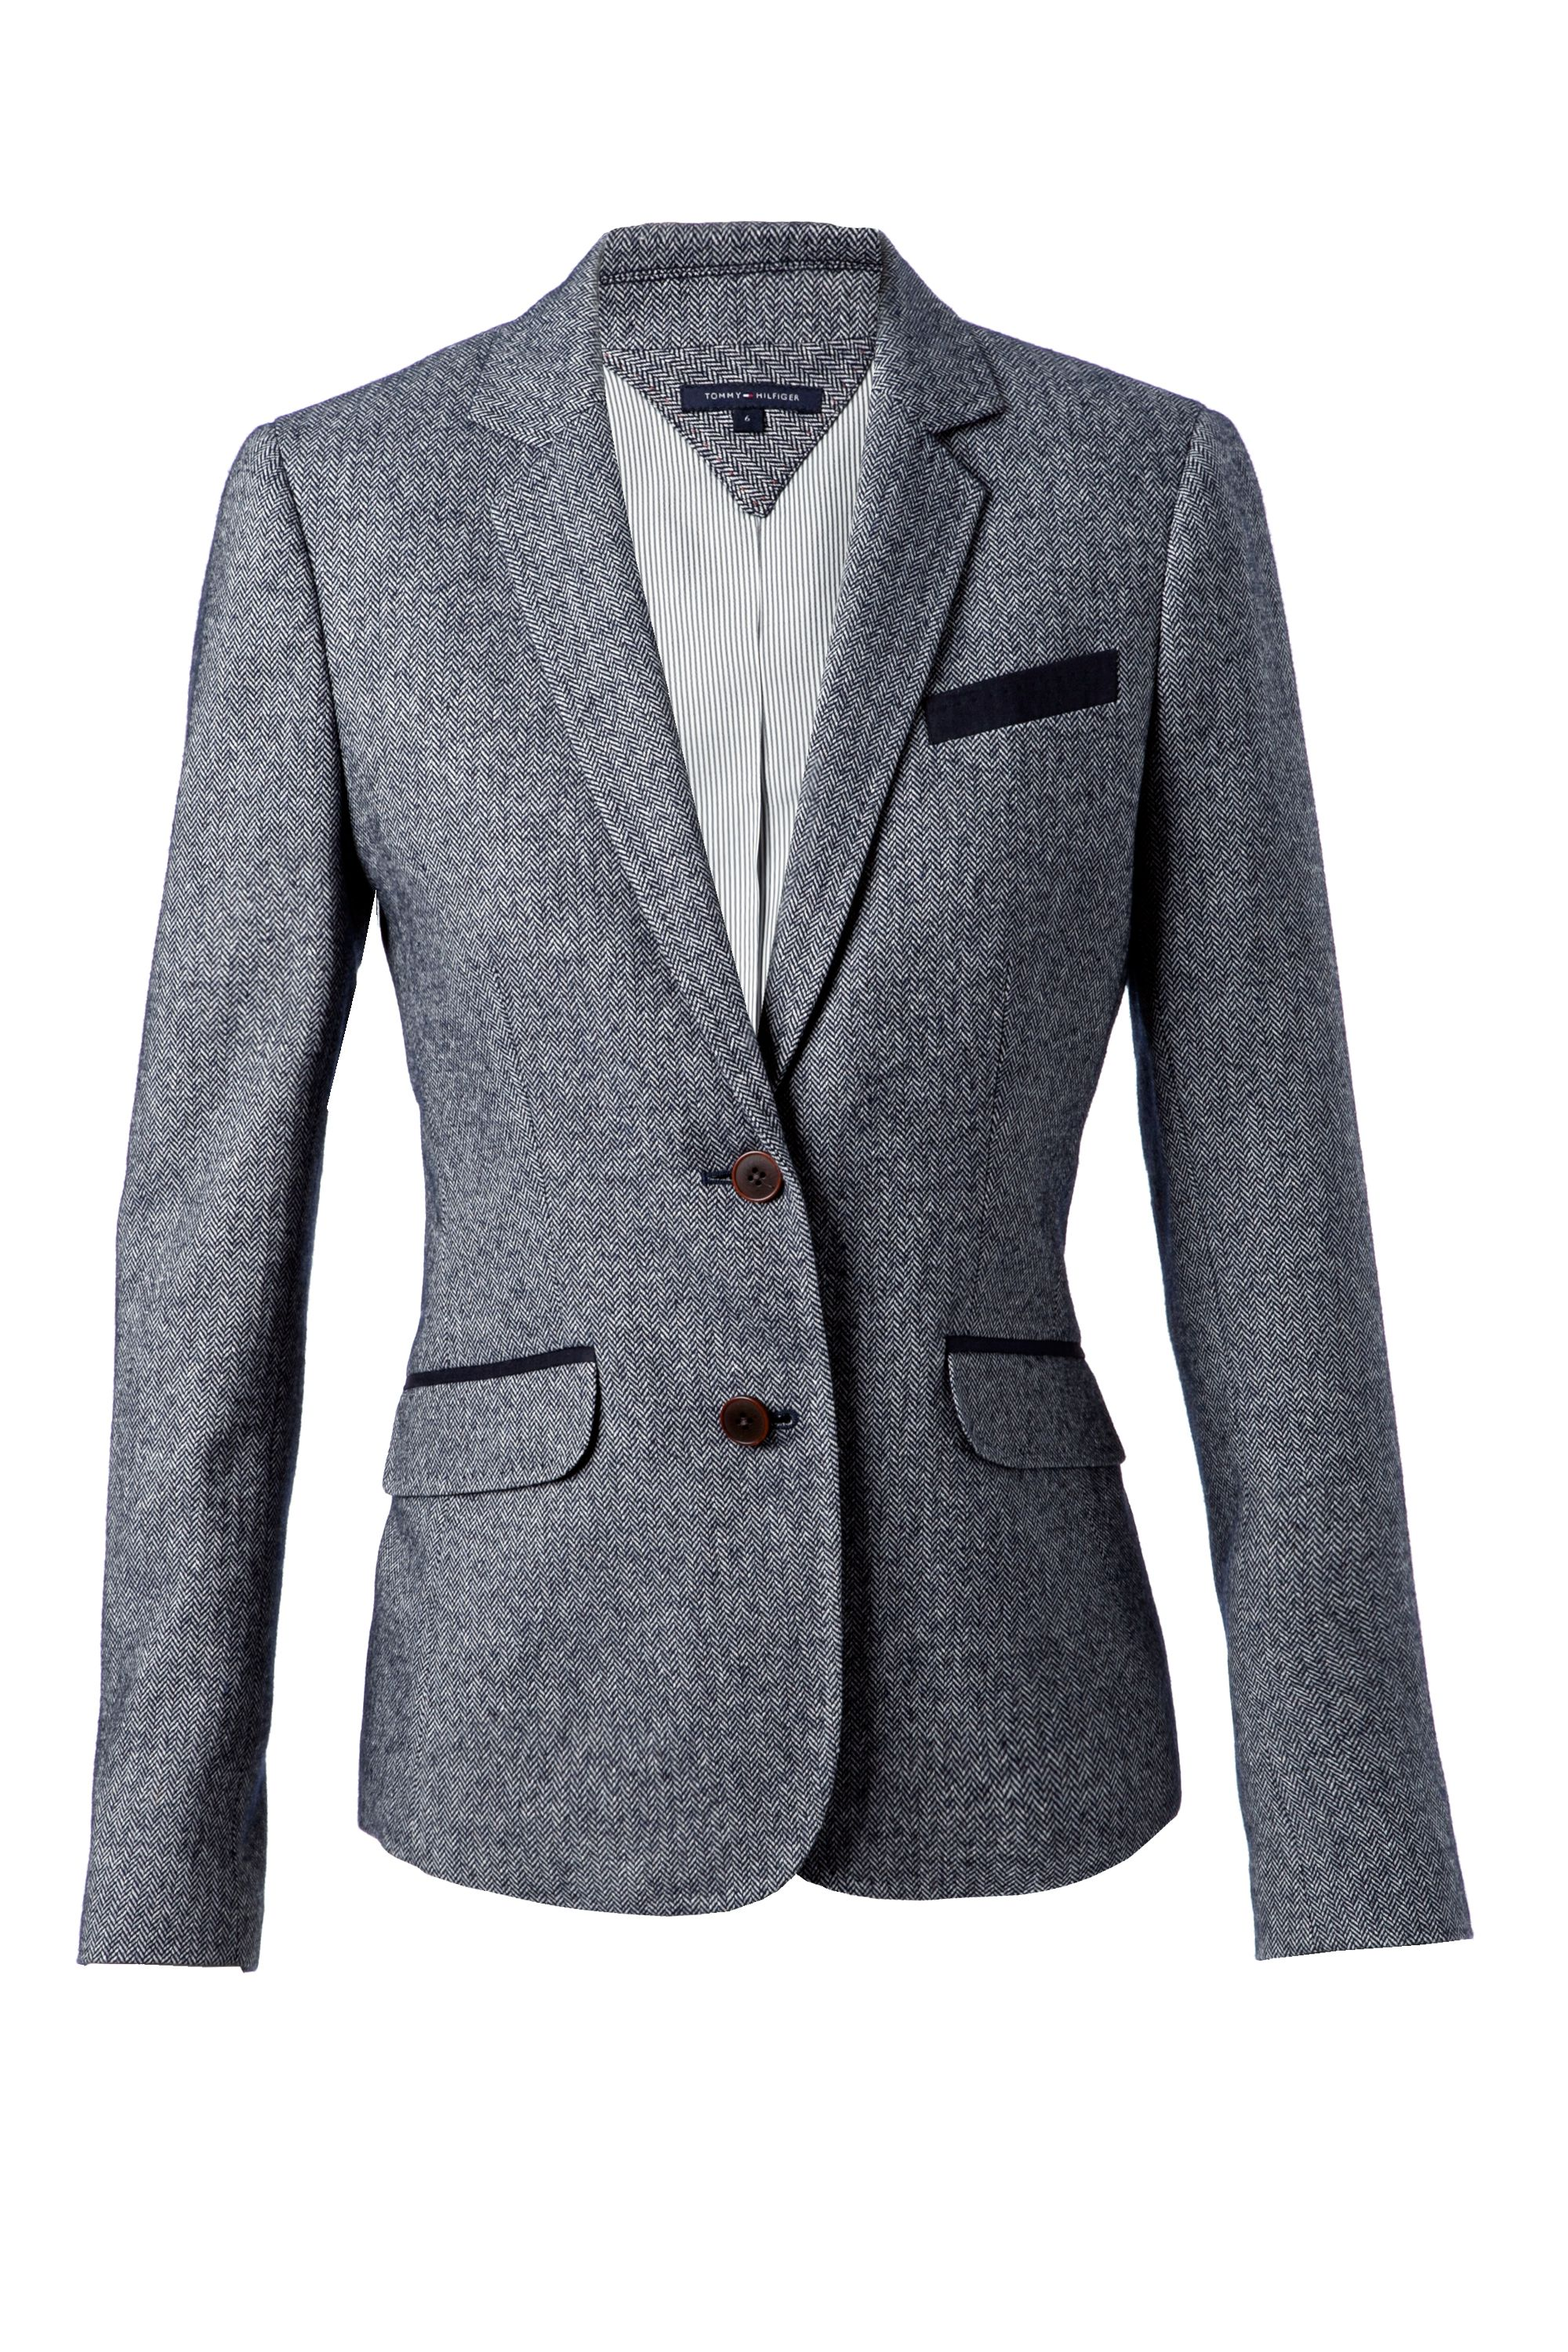 Kenton New York blazer